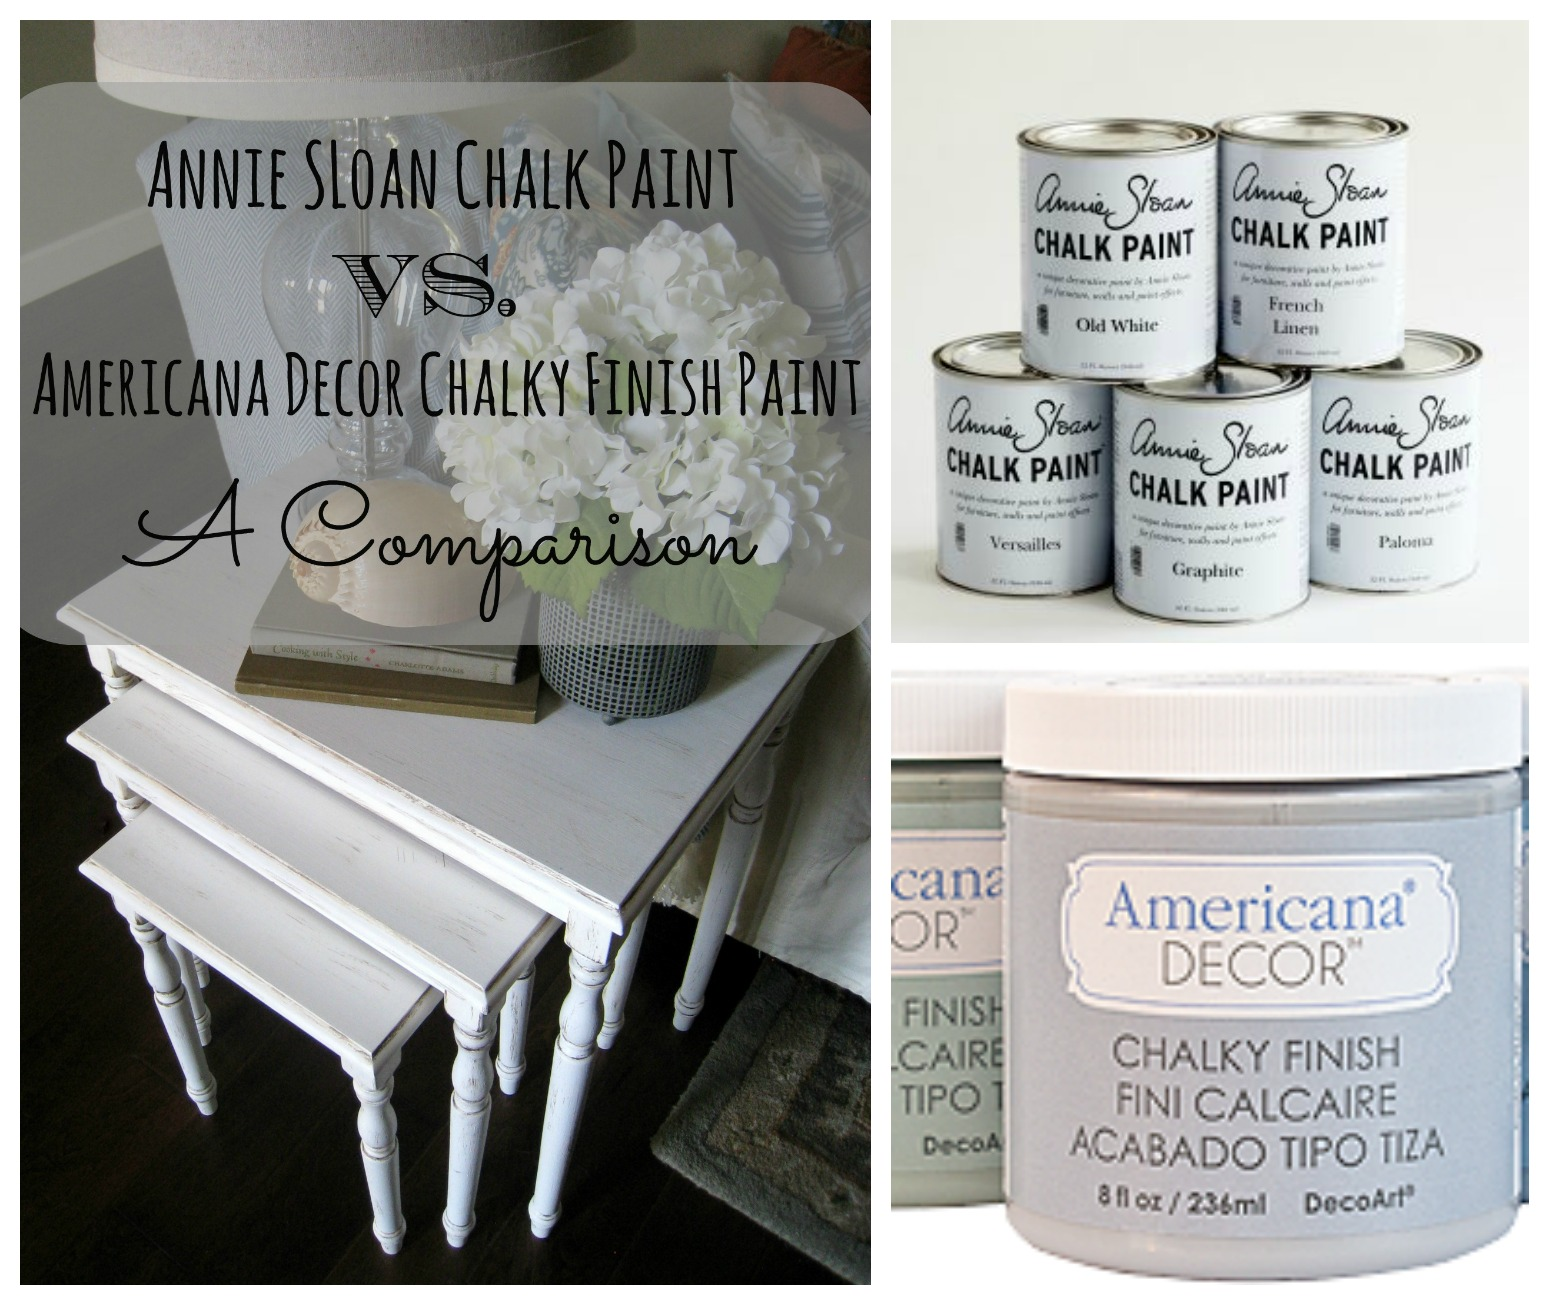 Americana Decor Chalky Finish Annie Sloan Chalk Paint Vs Americana Decor Chalky Paint